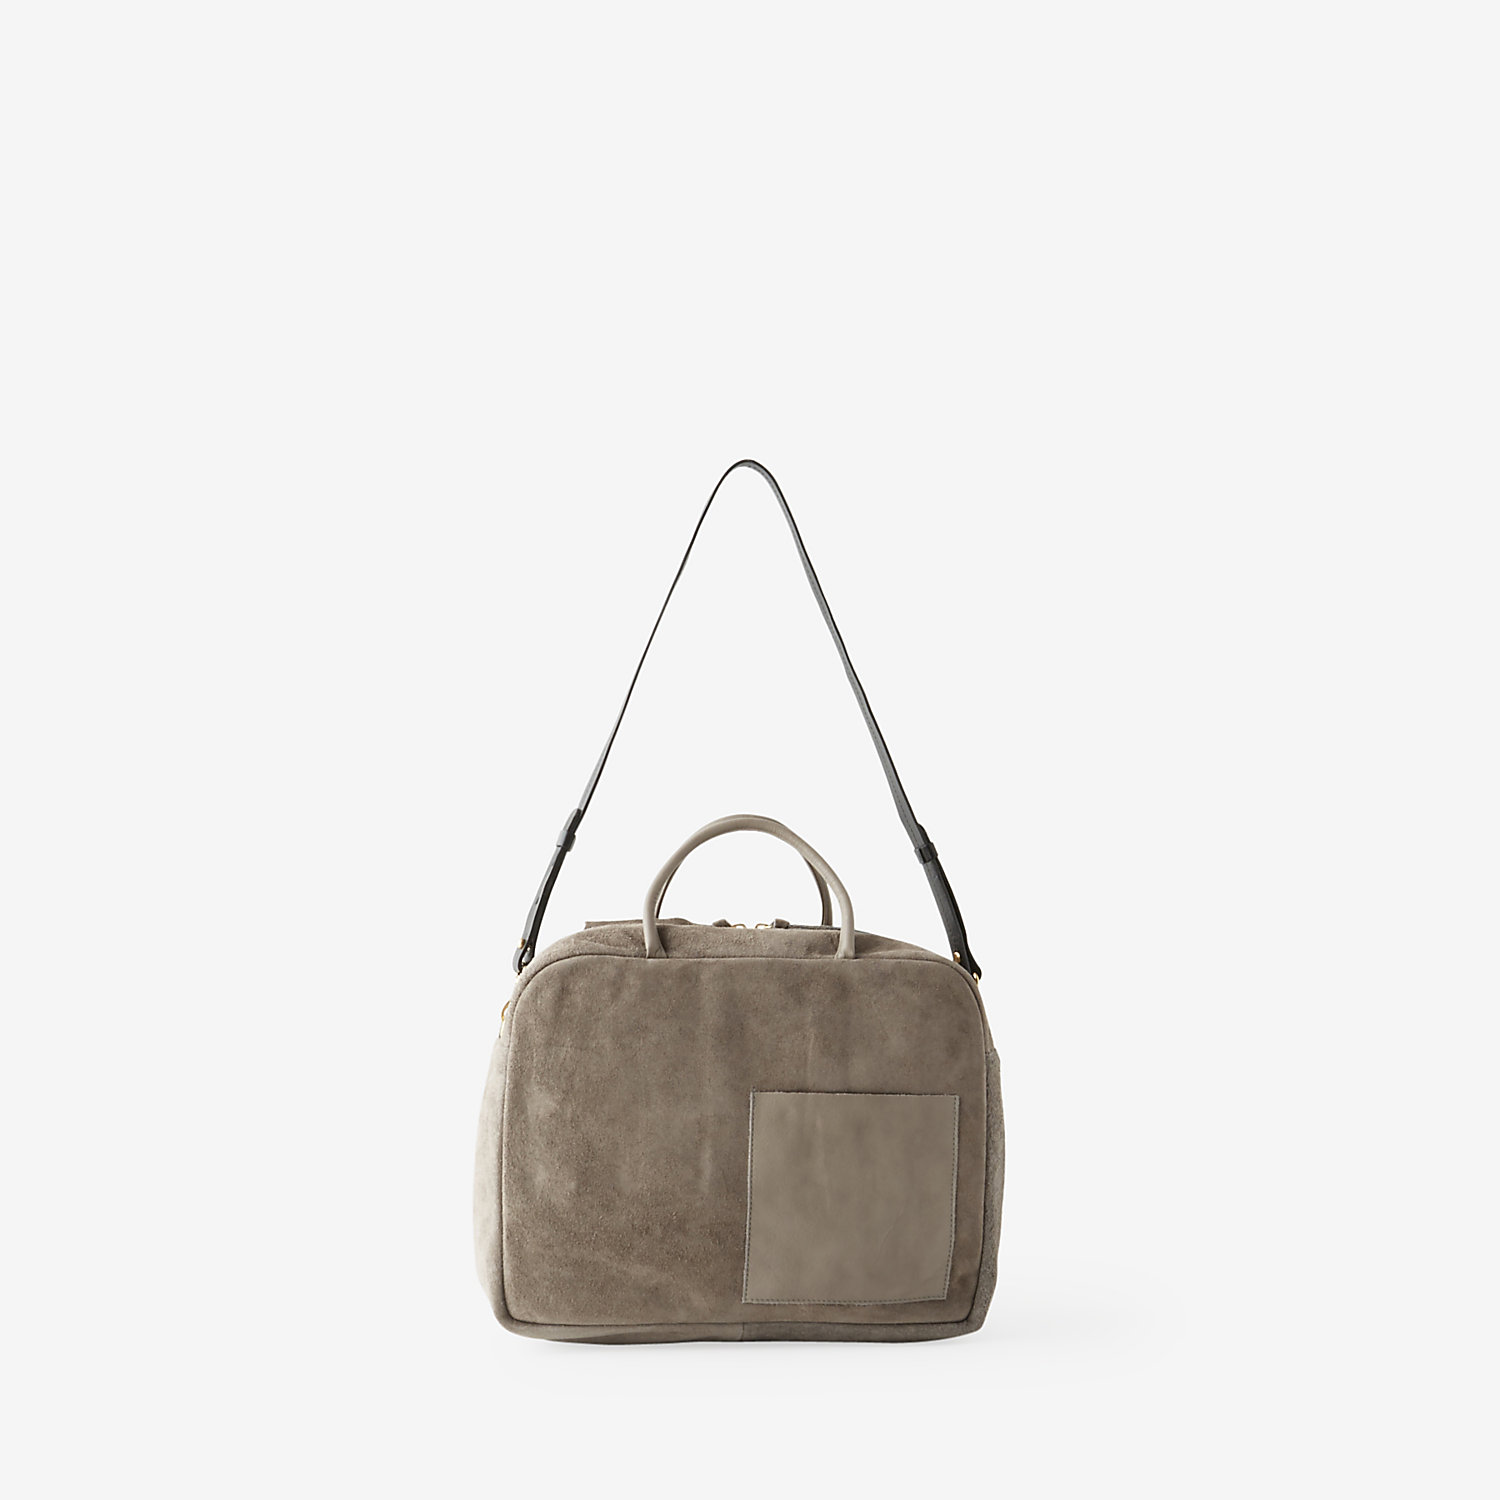 CLAUDE WORK BAG